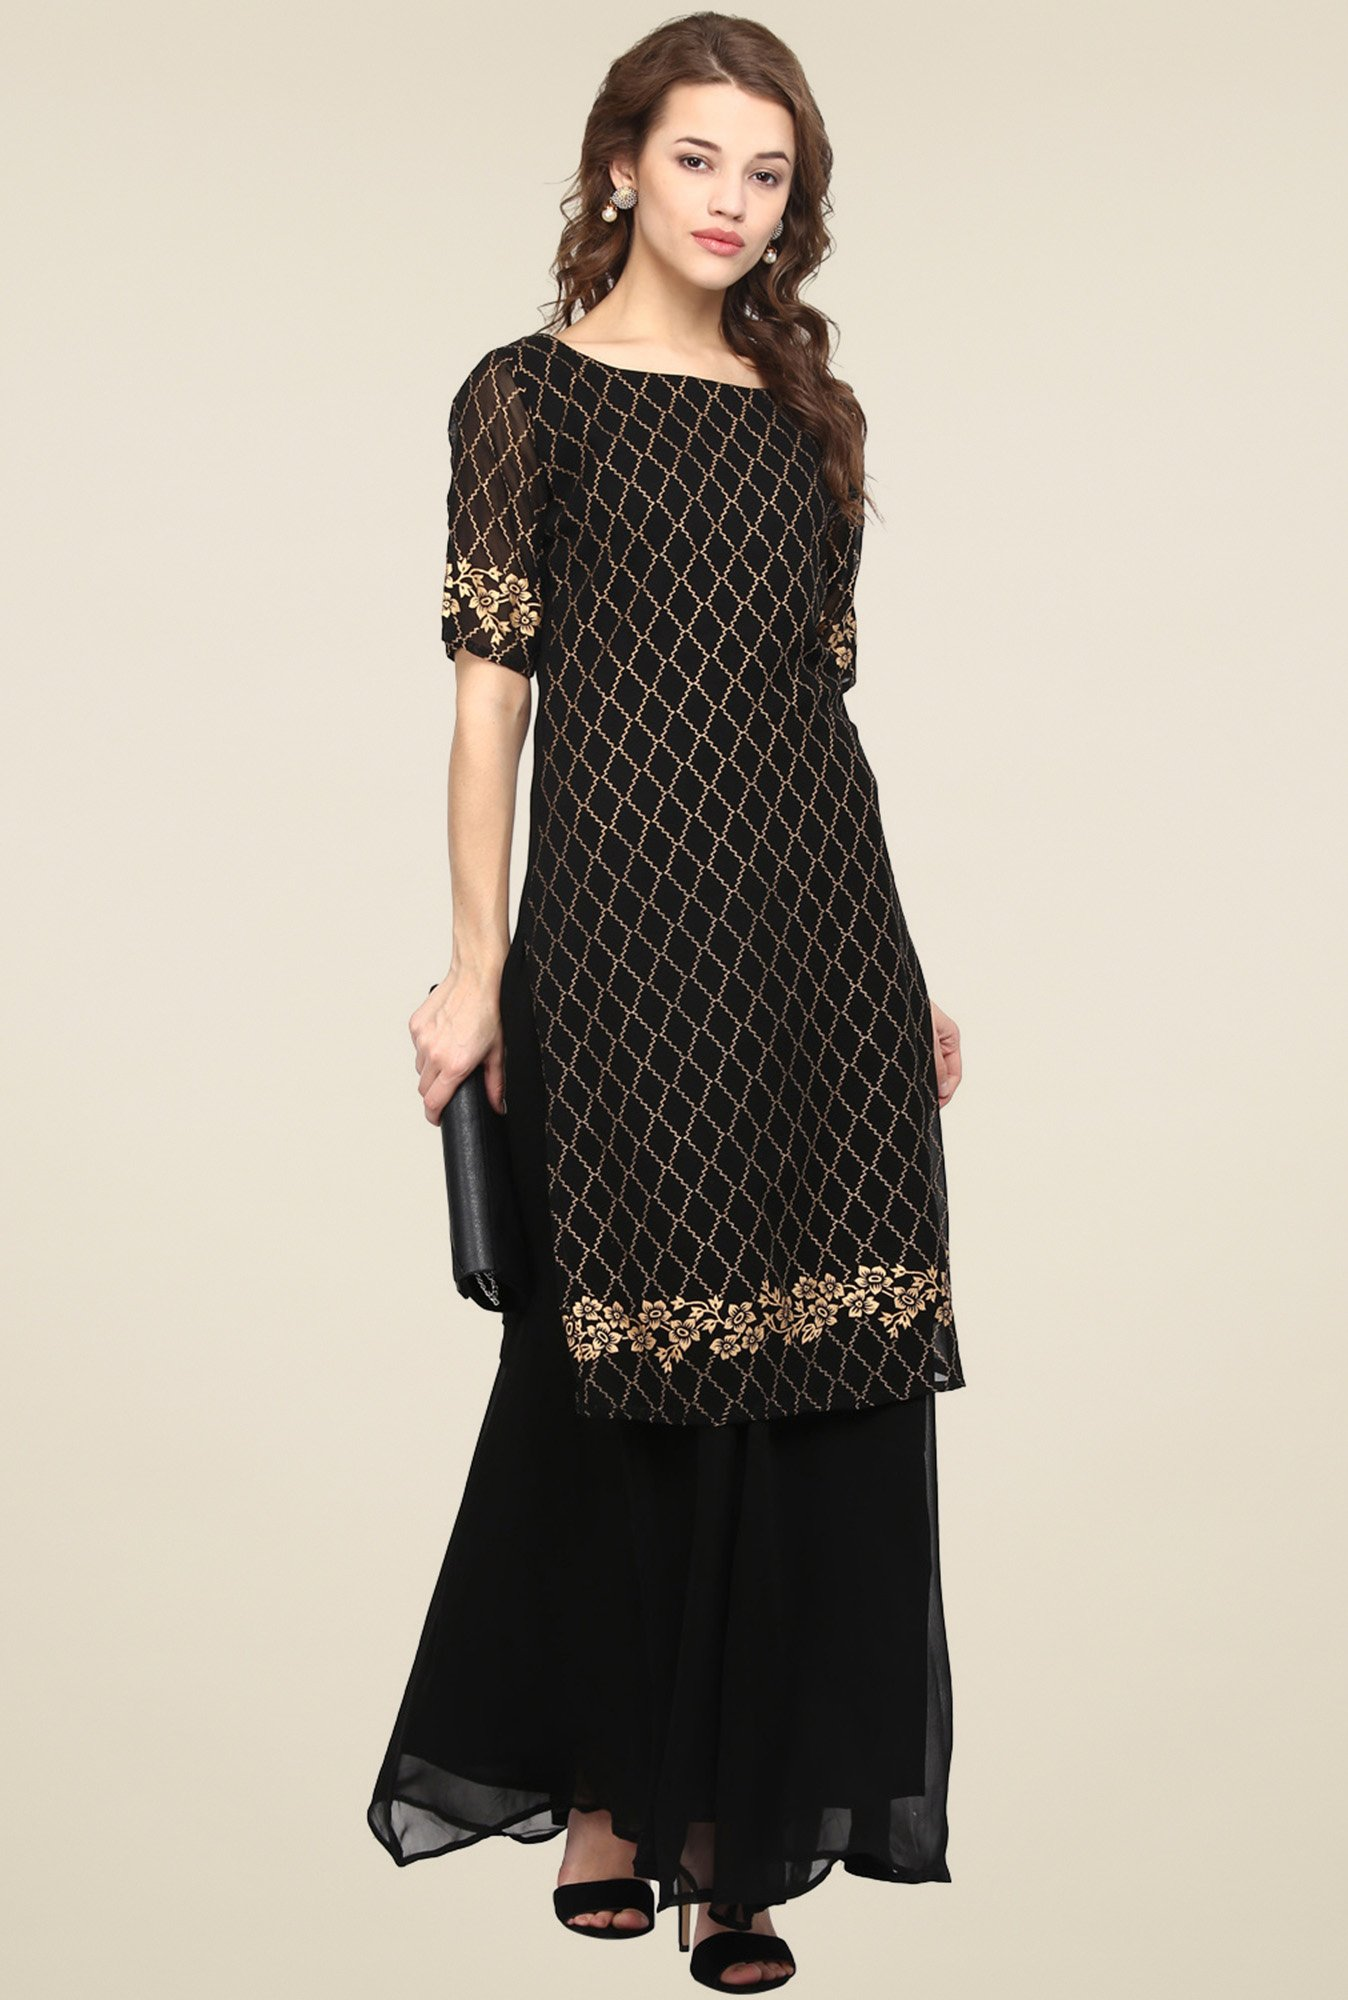 Ahalyaa Black Half Sleeves Kurti